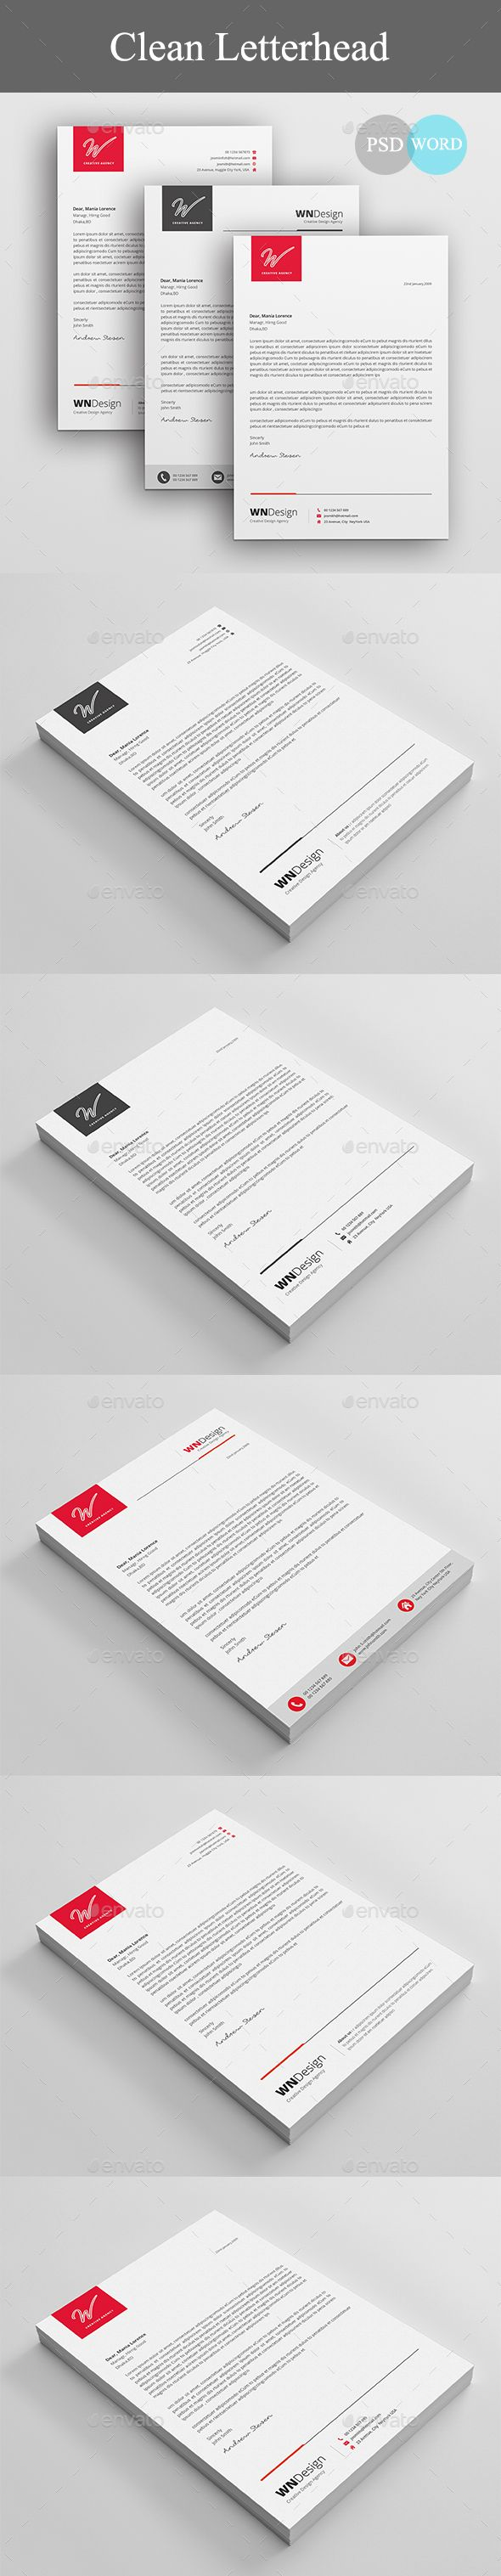 letterhead design template stationery print letterhead design